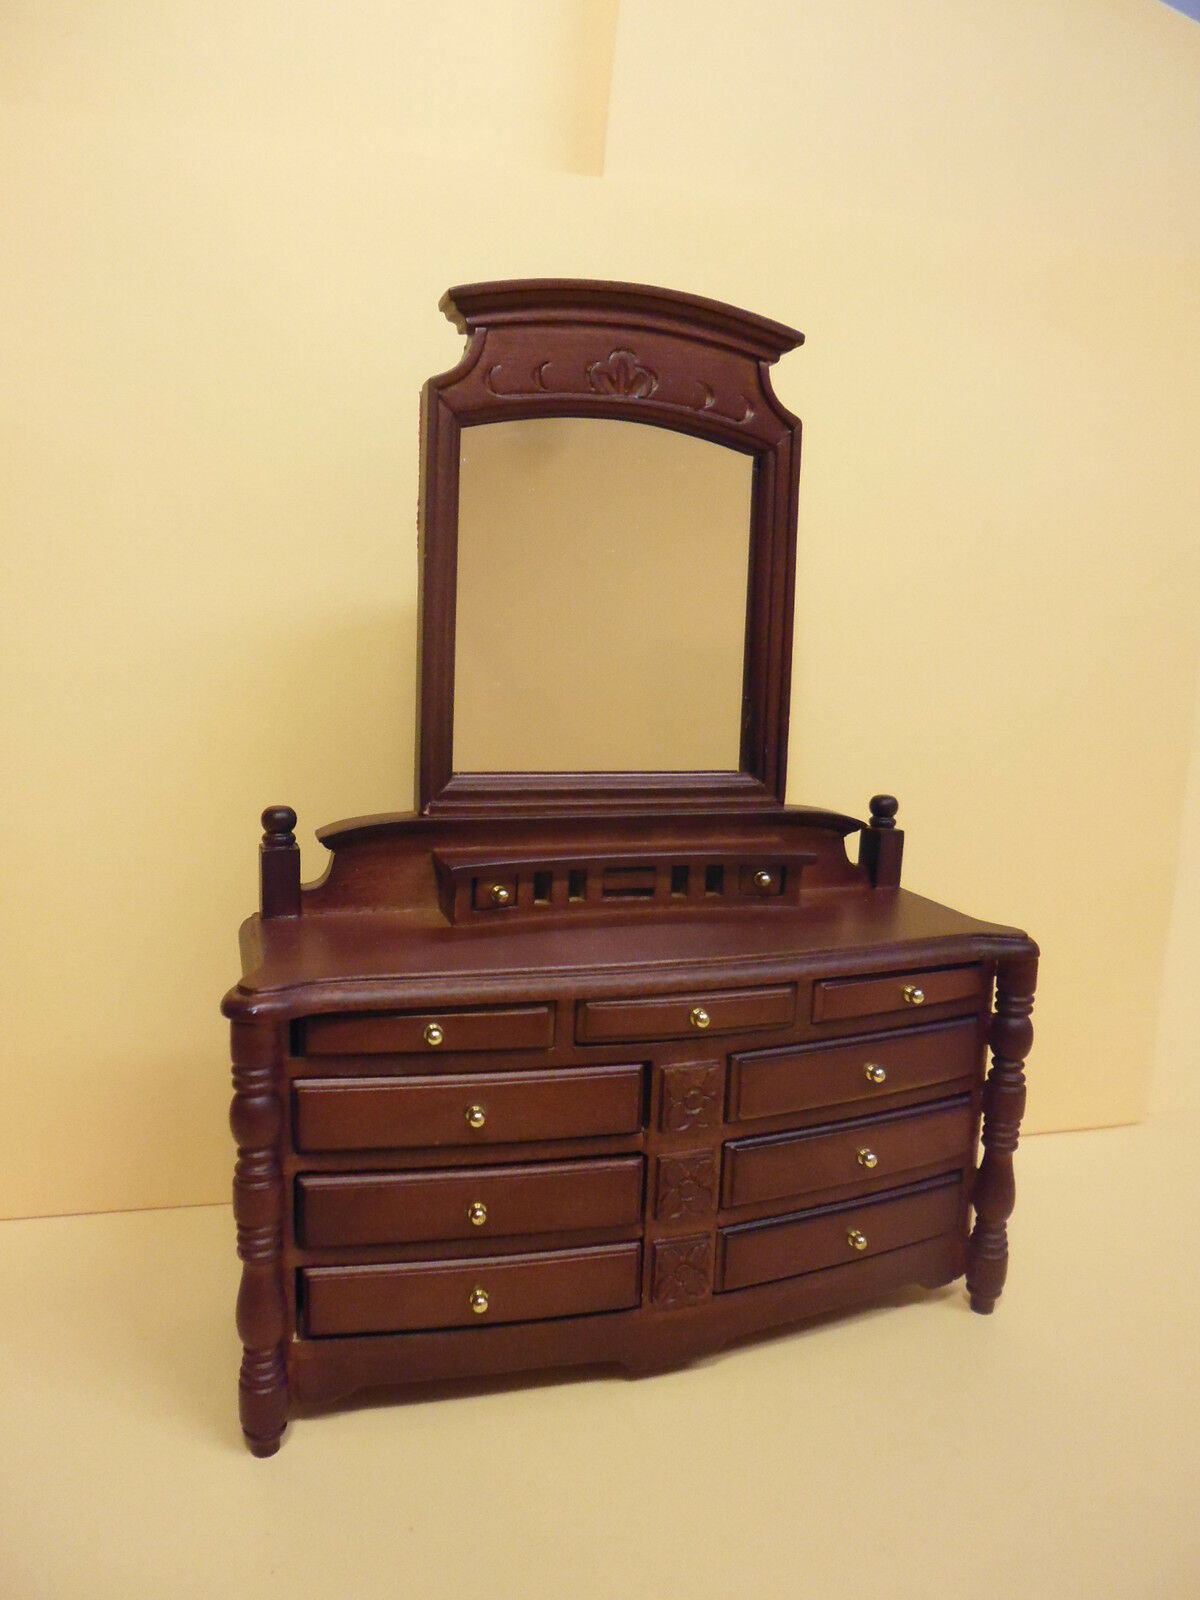 Quality Furniture : Dolls House Quality furniture 1/12 scale Dressing Table 63225DT ...